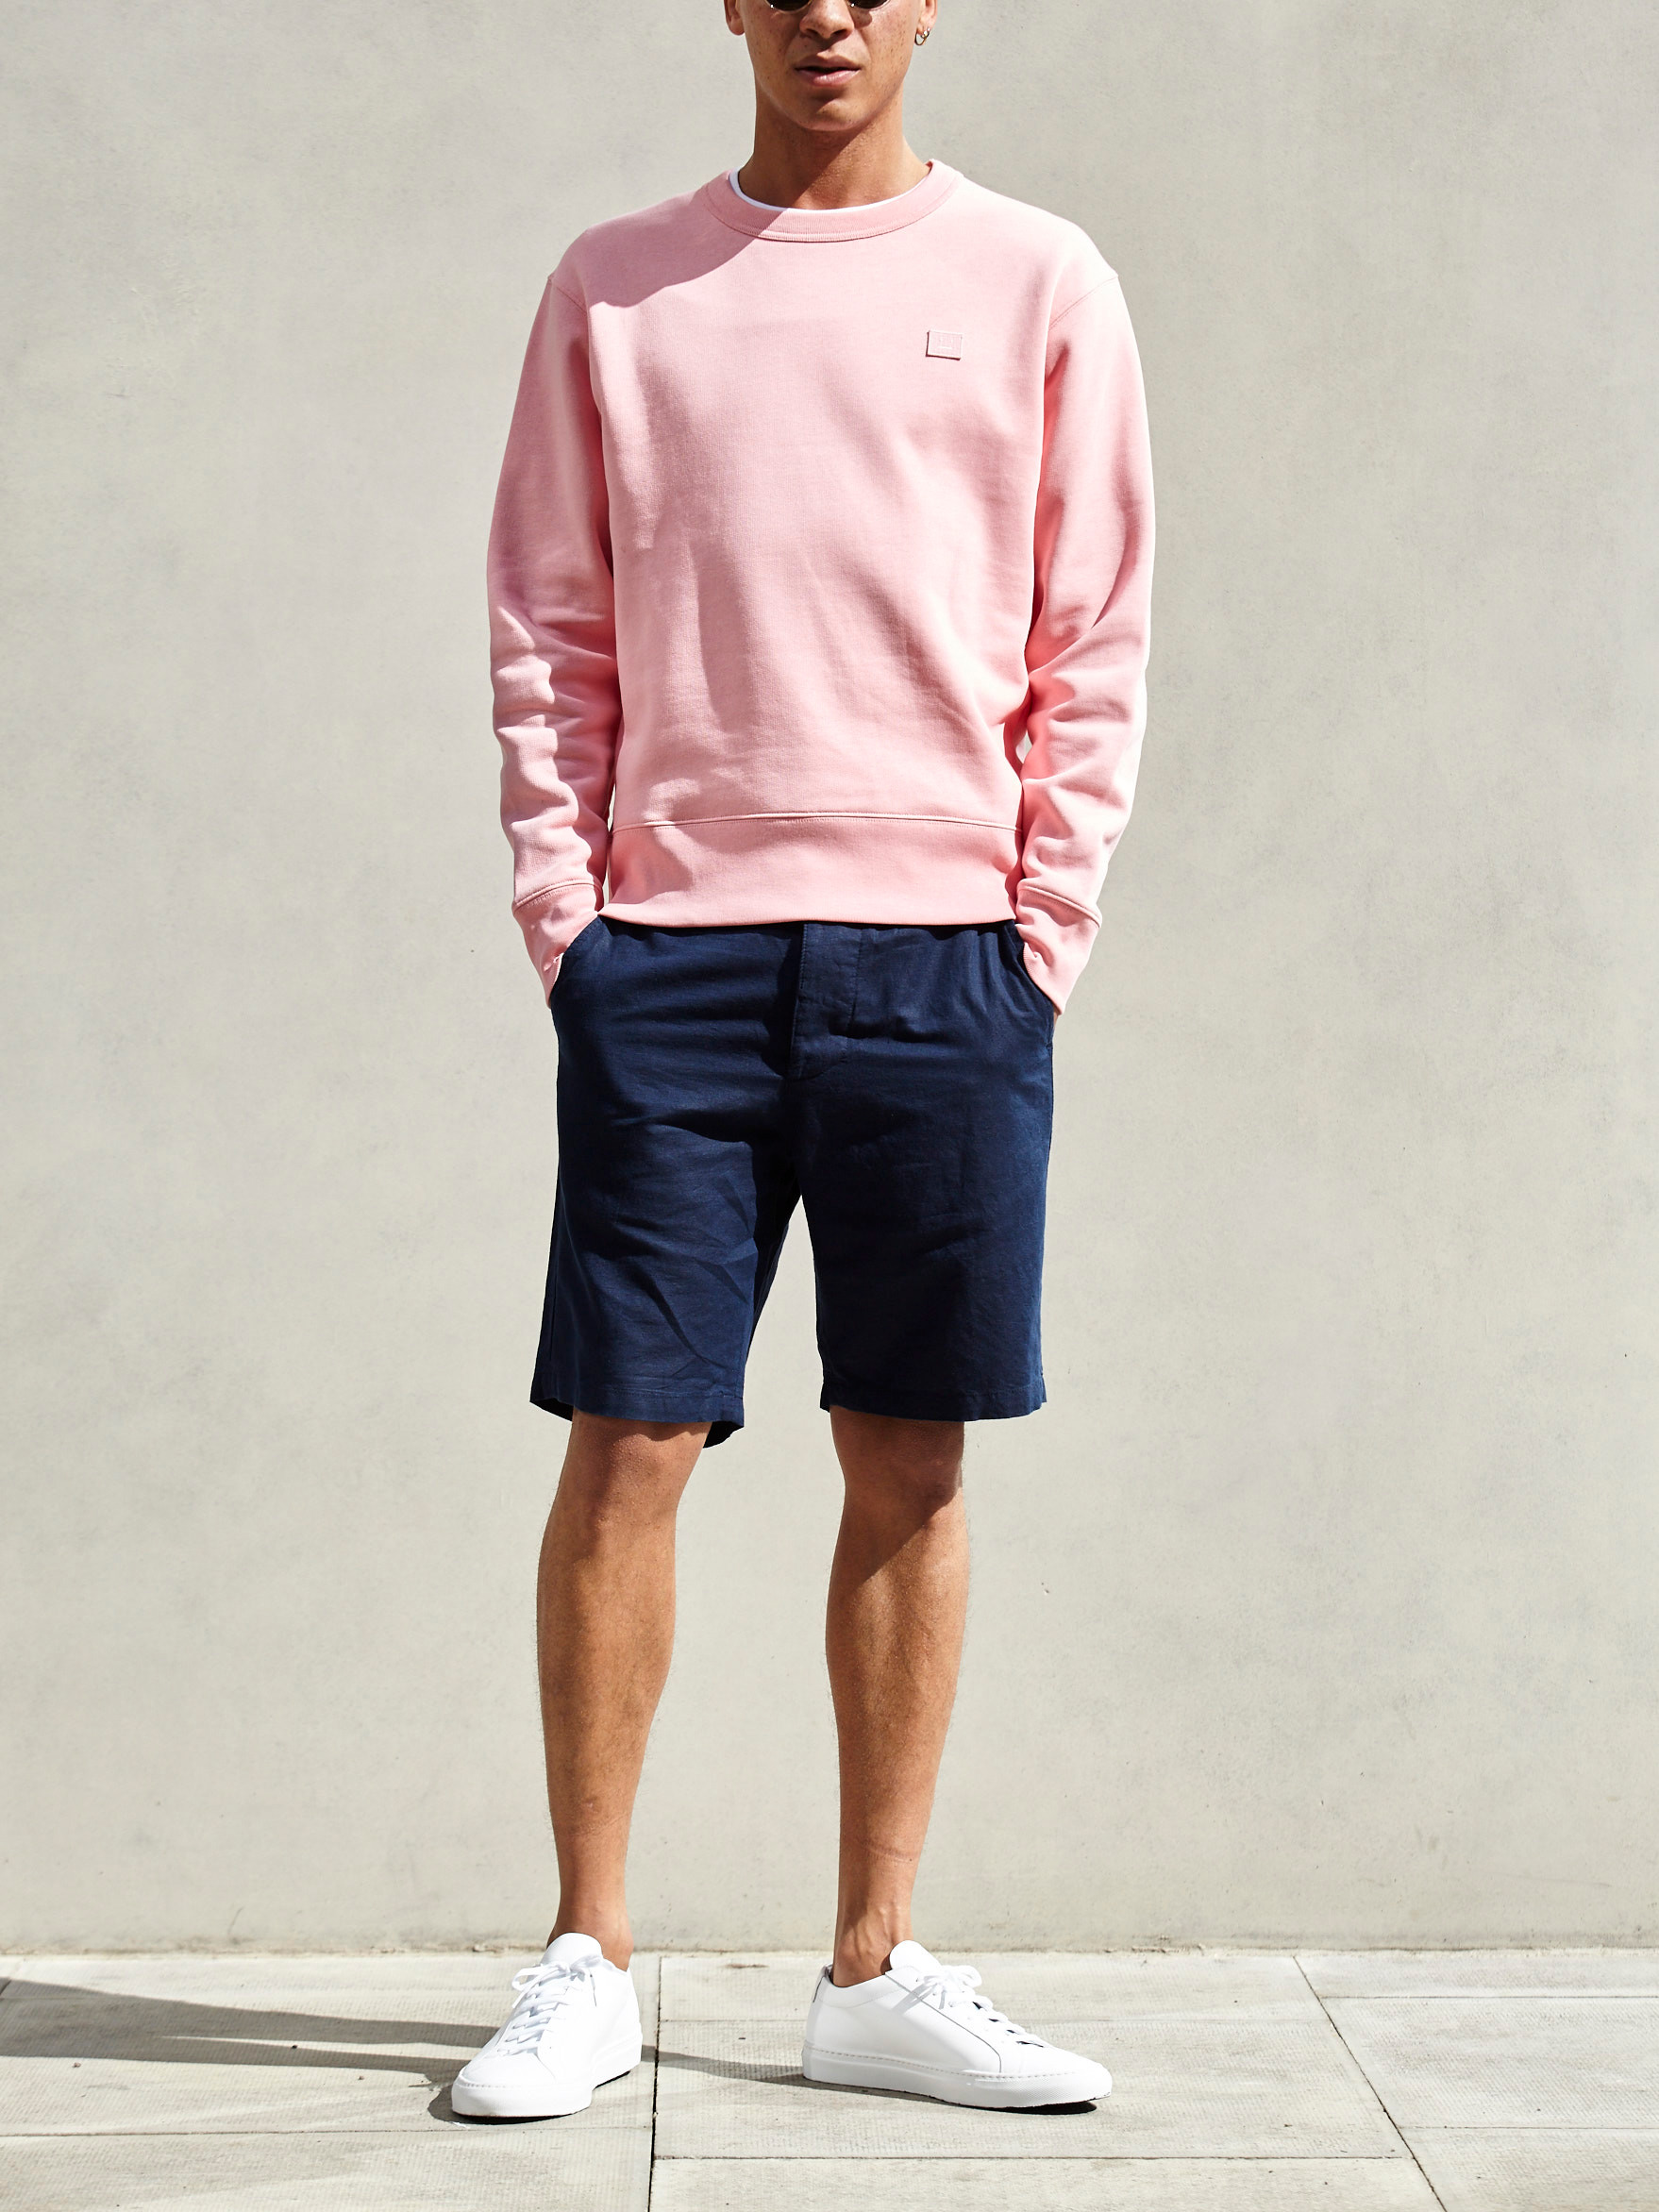 Men's outfit idea for 2021 with bold coloured sweatshirt, white crew neck t-shirt, navy shorts, tortoiseshell sunglasses, white trainers. Suitable for summer.